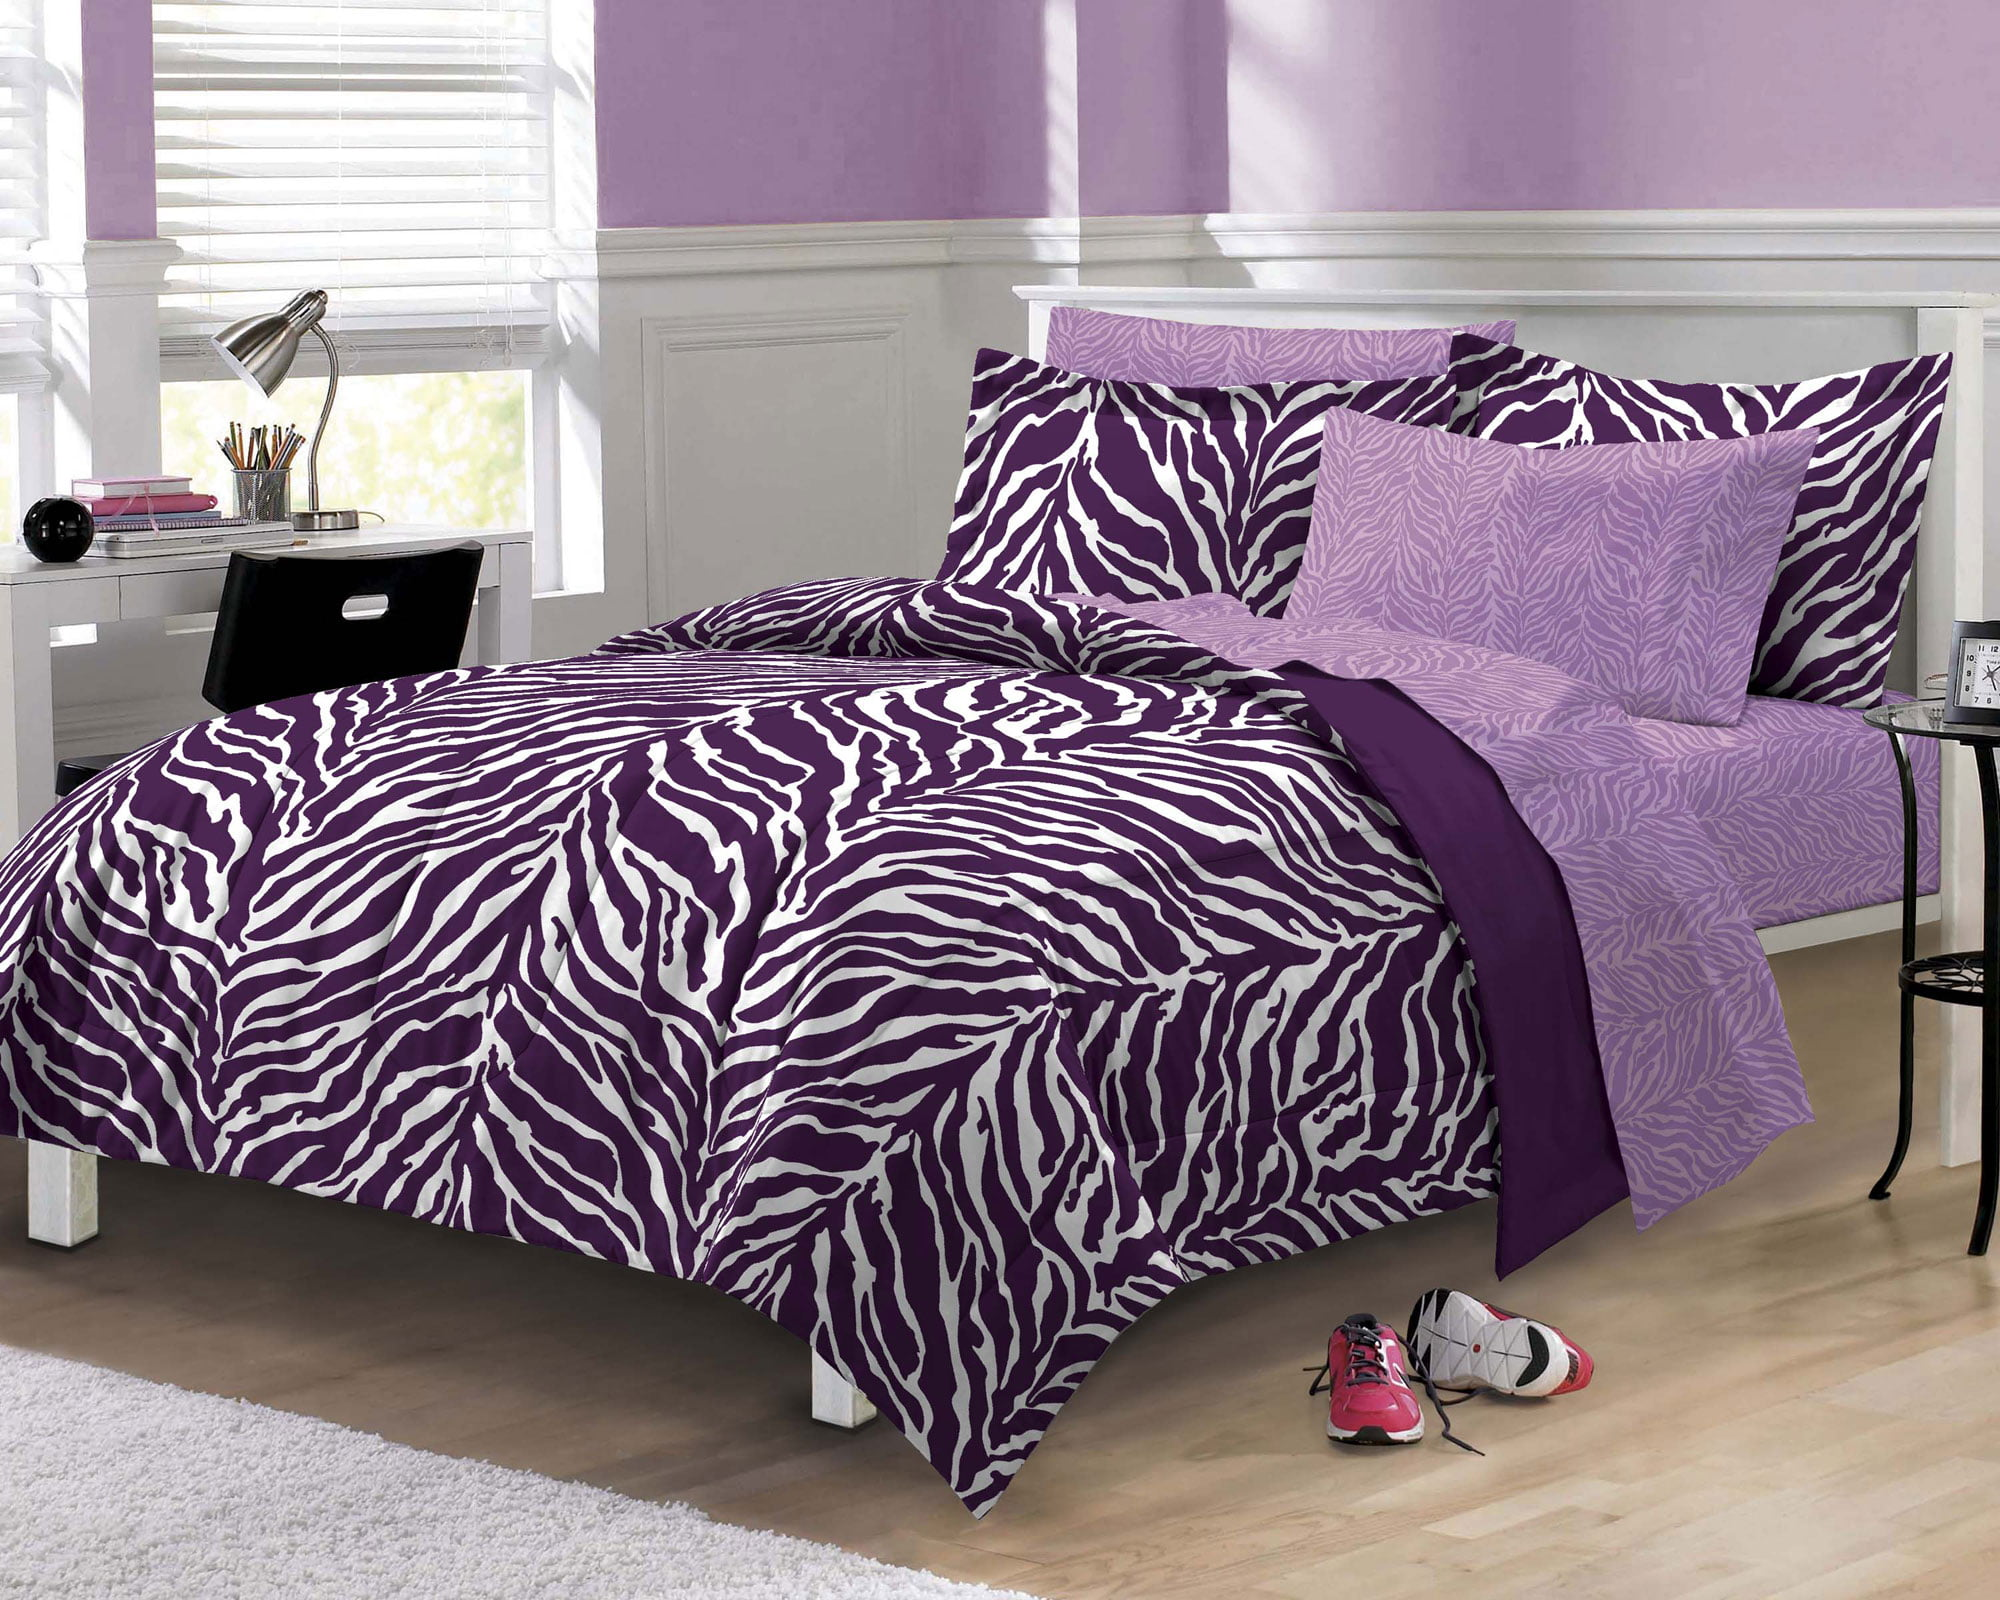 My Room Zebra Complete Bed in a Bag Bedding Set, Purple - Walmart.com